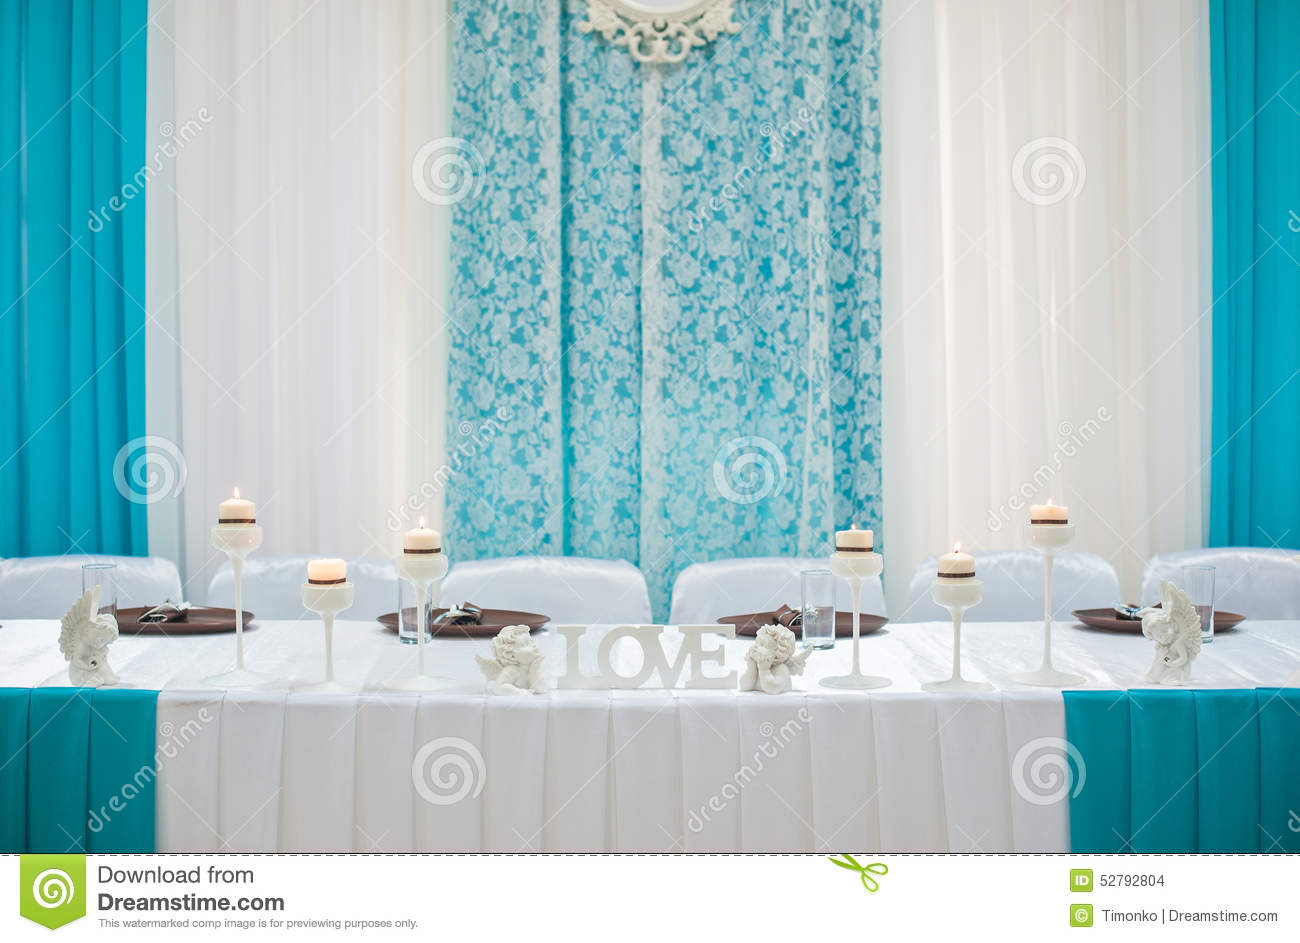 Bride Groom Table Decoration Beautifully Decorated Wedding Table Bride And Groom At A Restaur